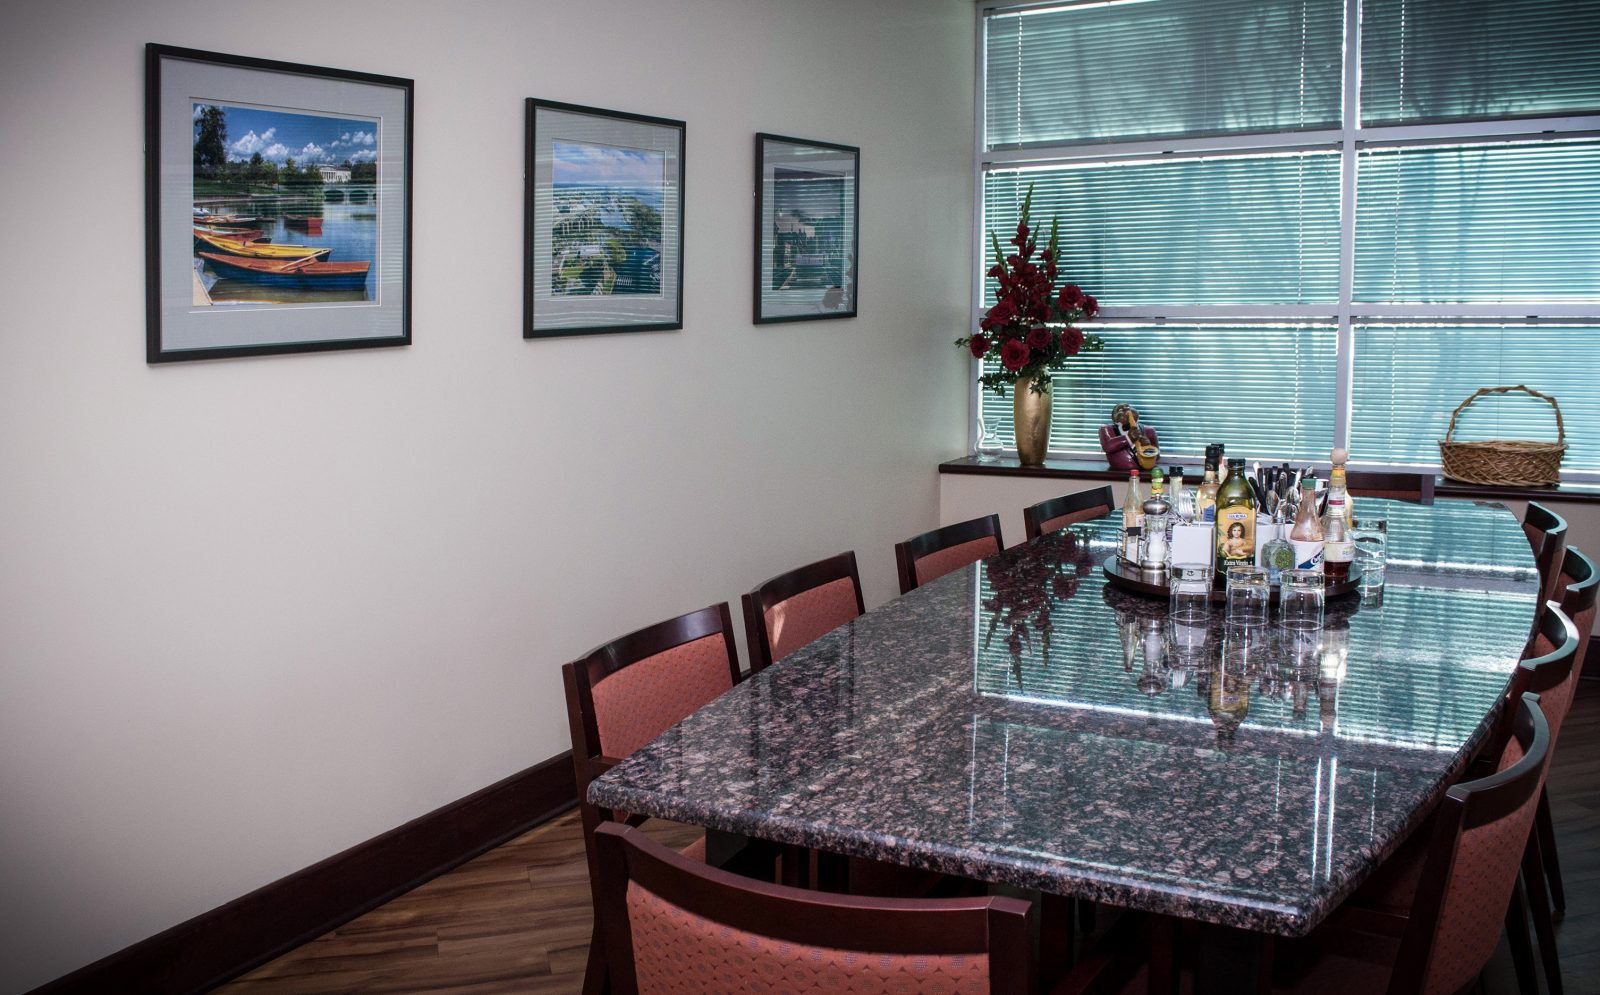 framed artwork on the wall of a conference room with a drink tray on the table